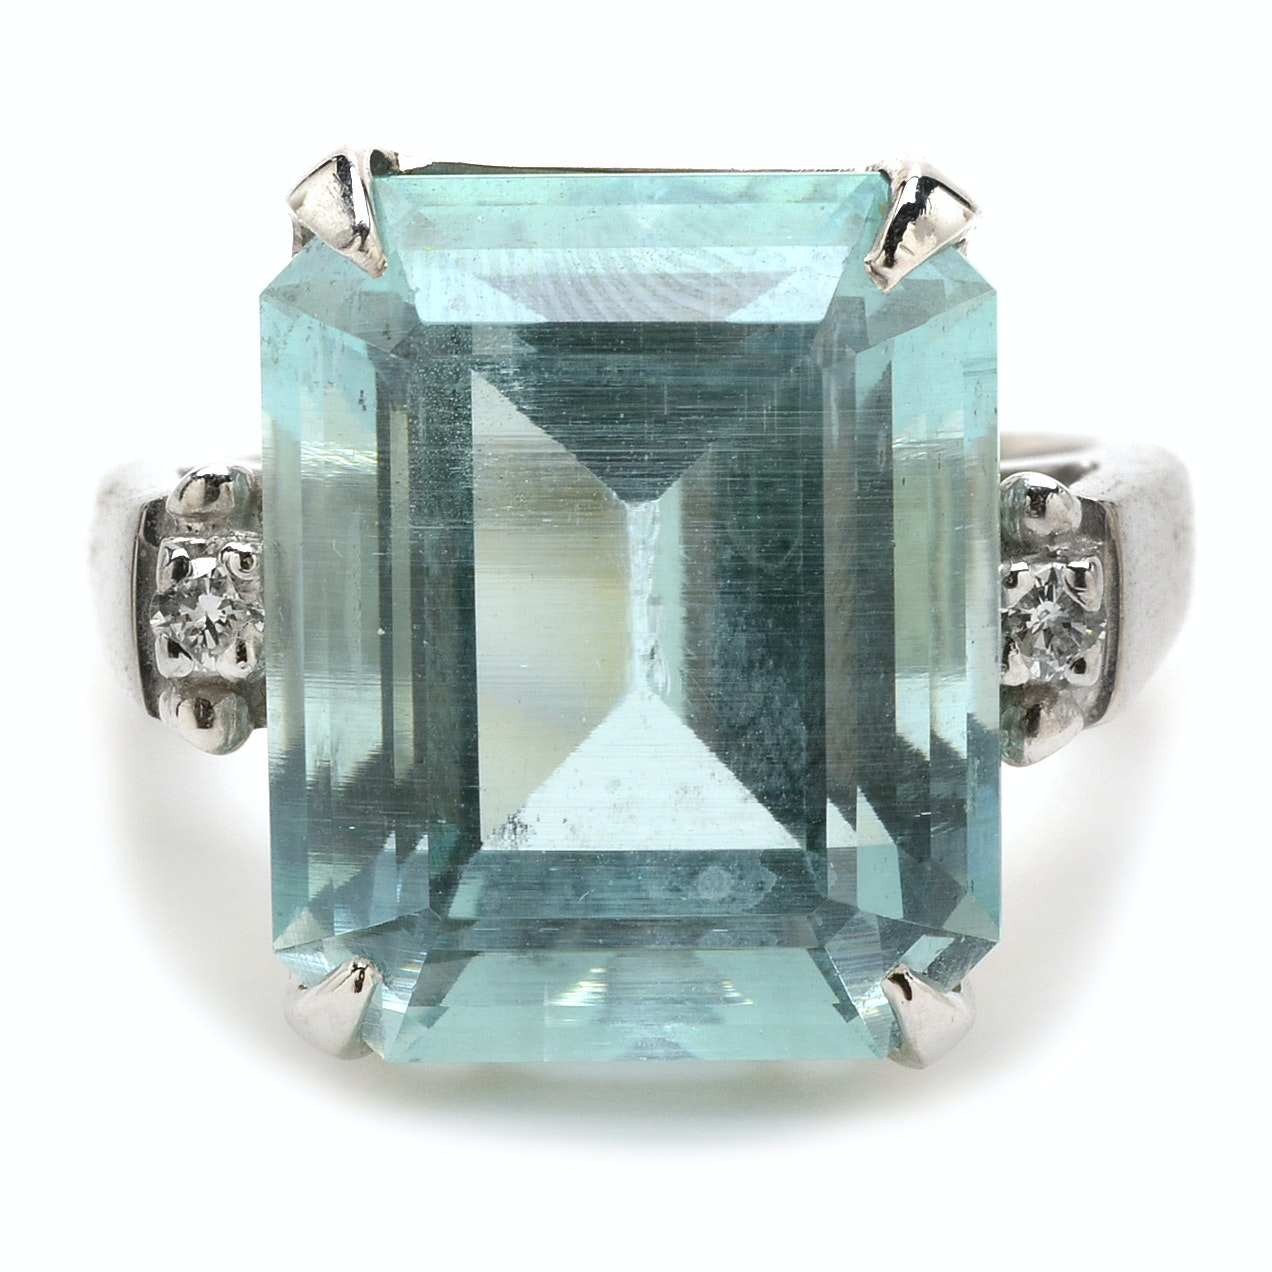 14K White Gold 15.38 Carats Natural Aquamarine Diamond Cocktail Ring